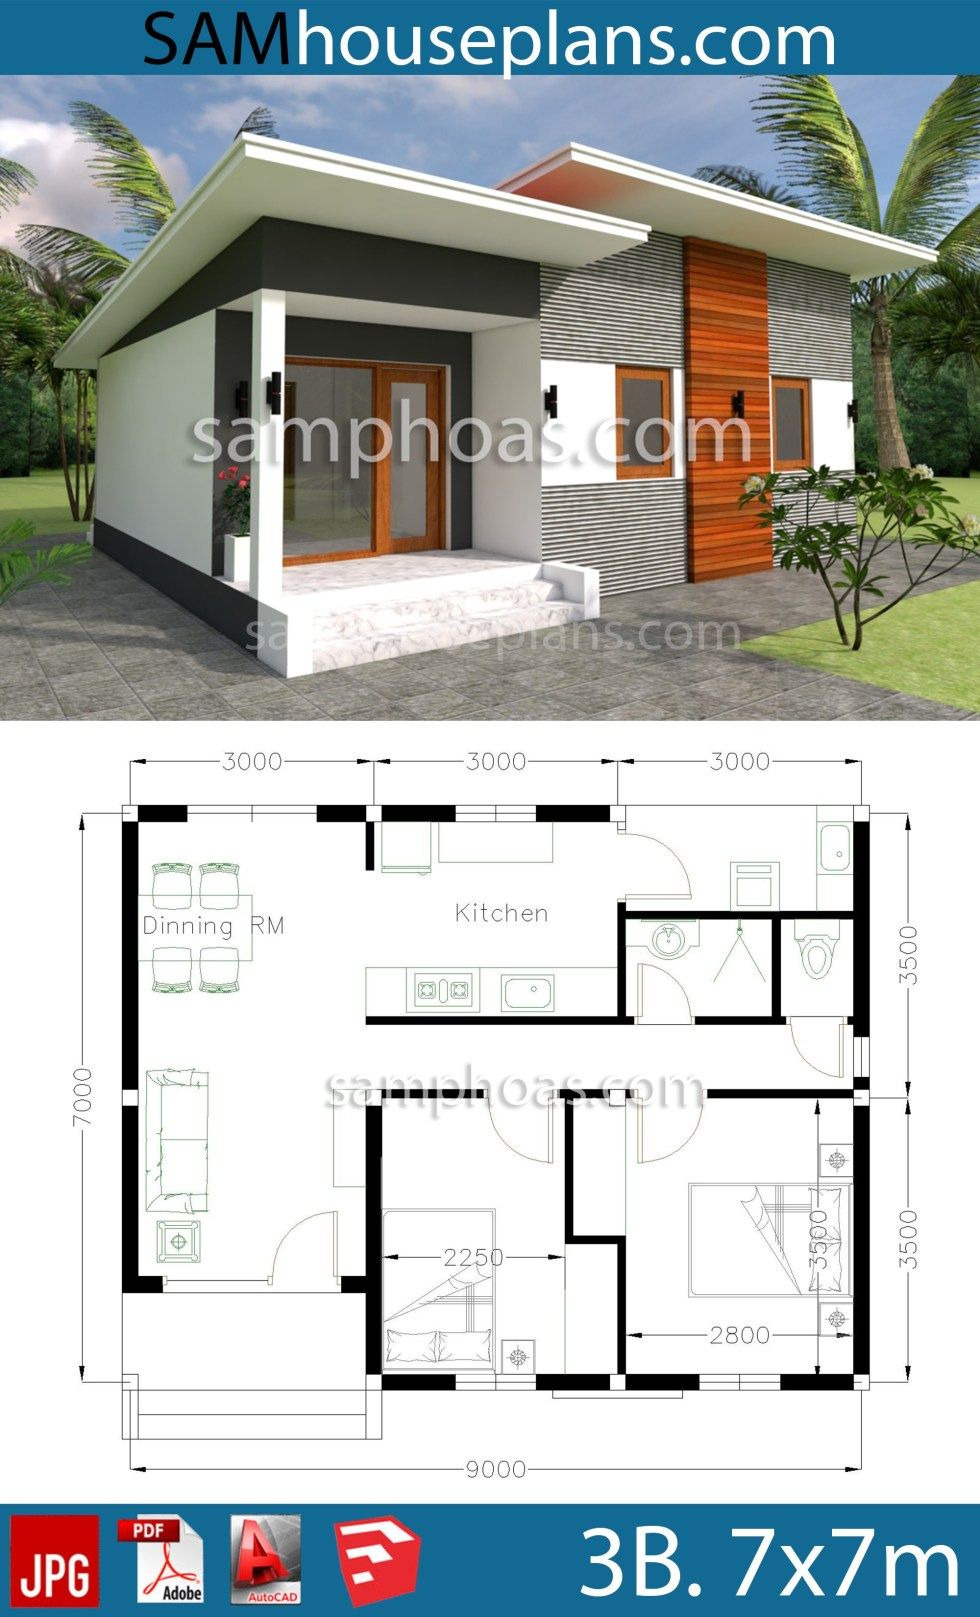 Design Small House Plans Unique House Plans 9x7m with 2 Bedrooms In 2020